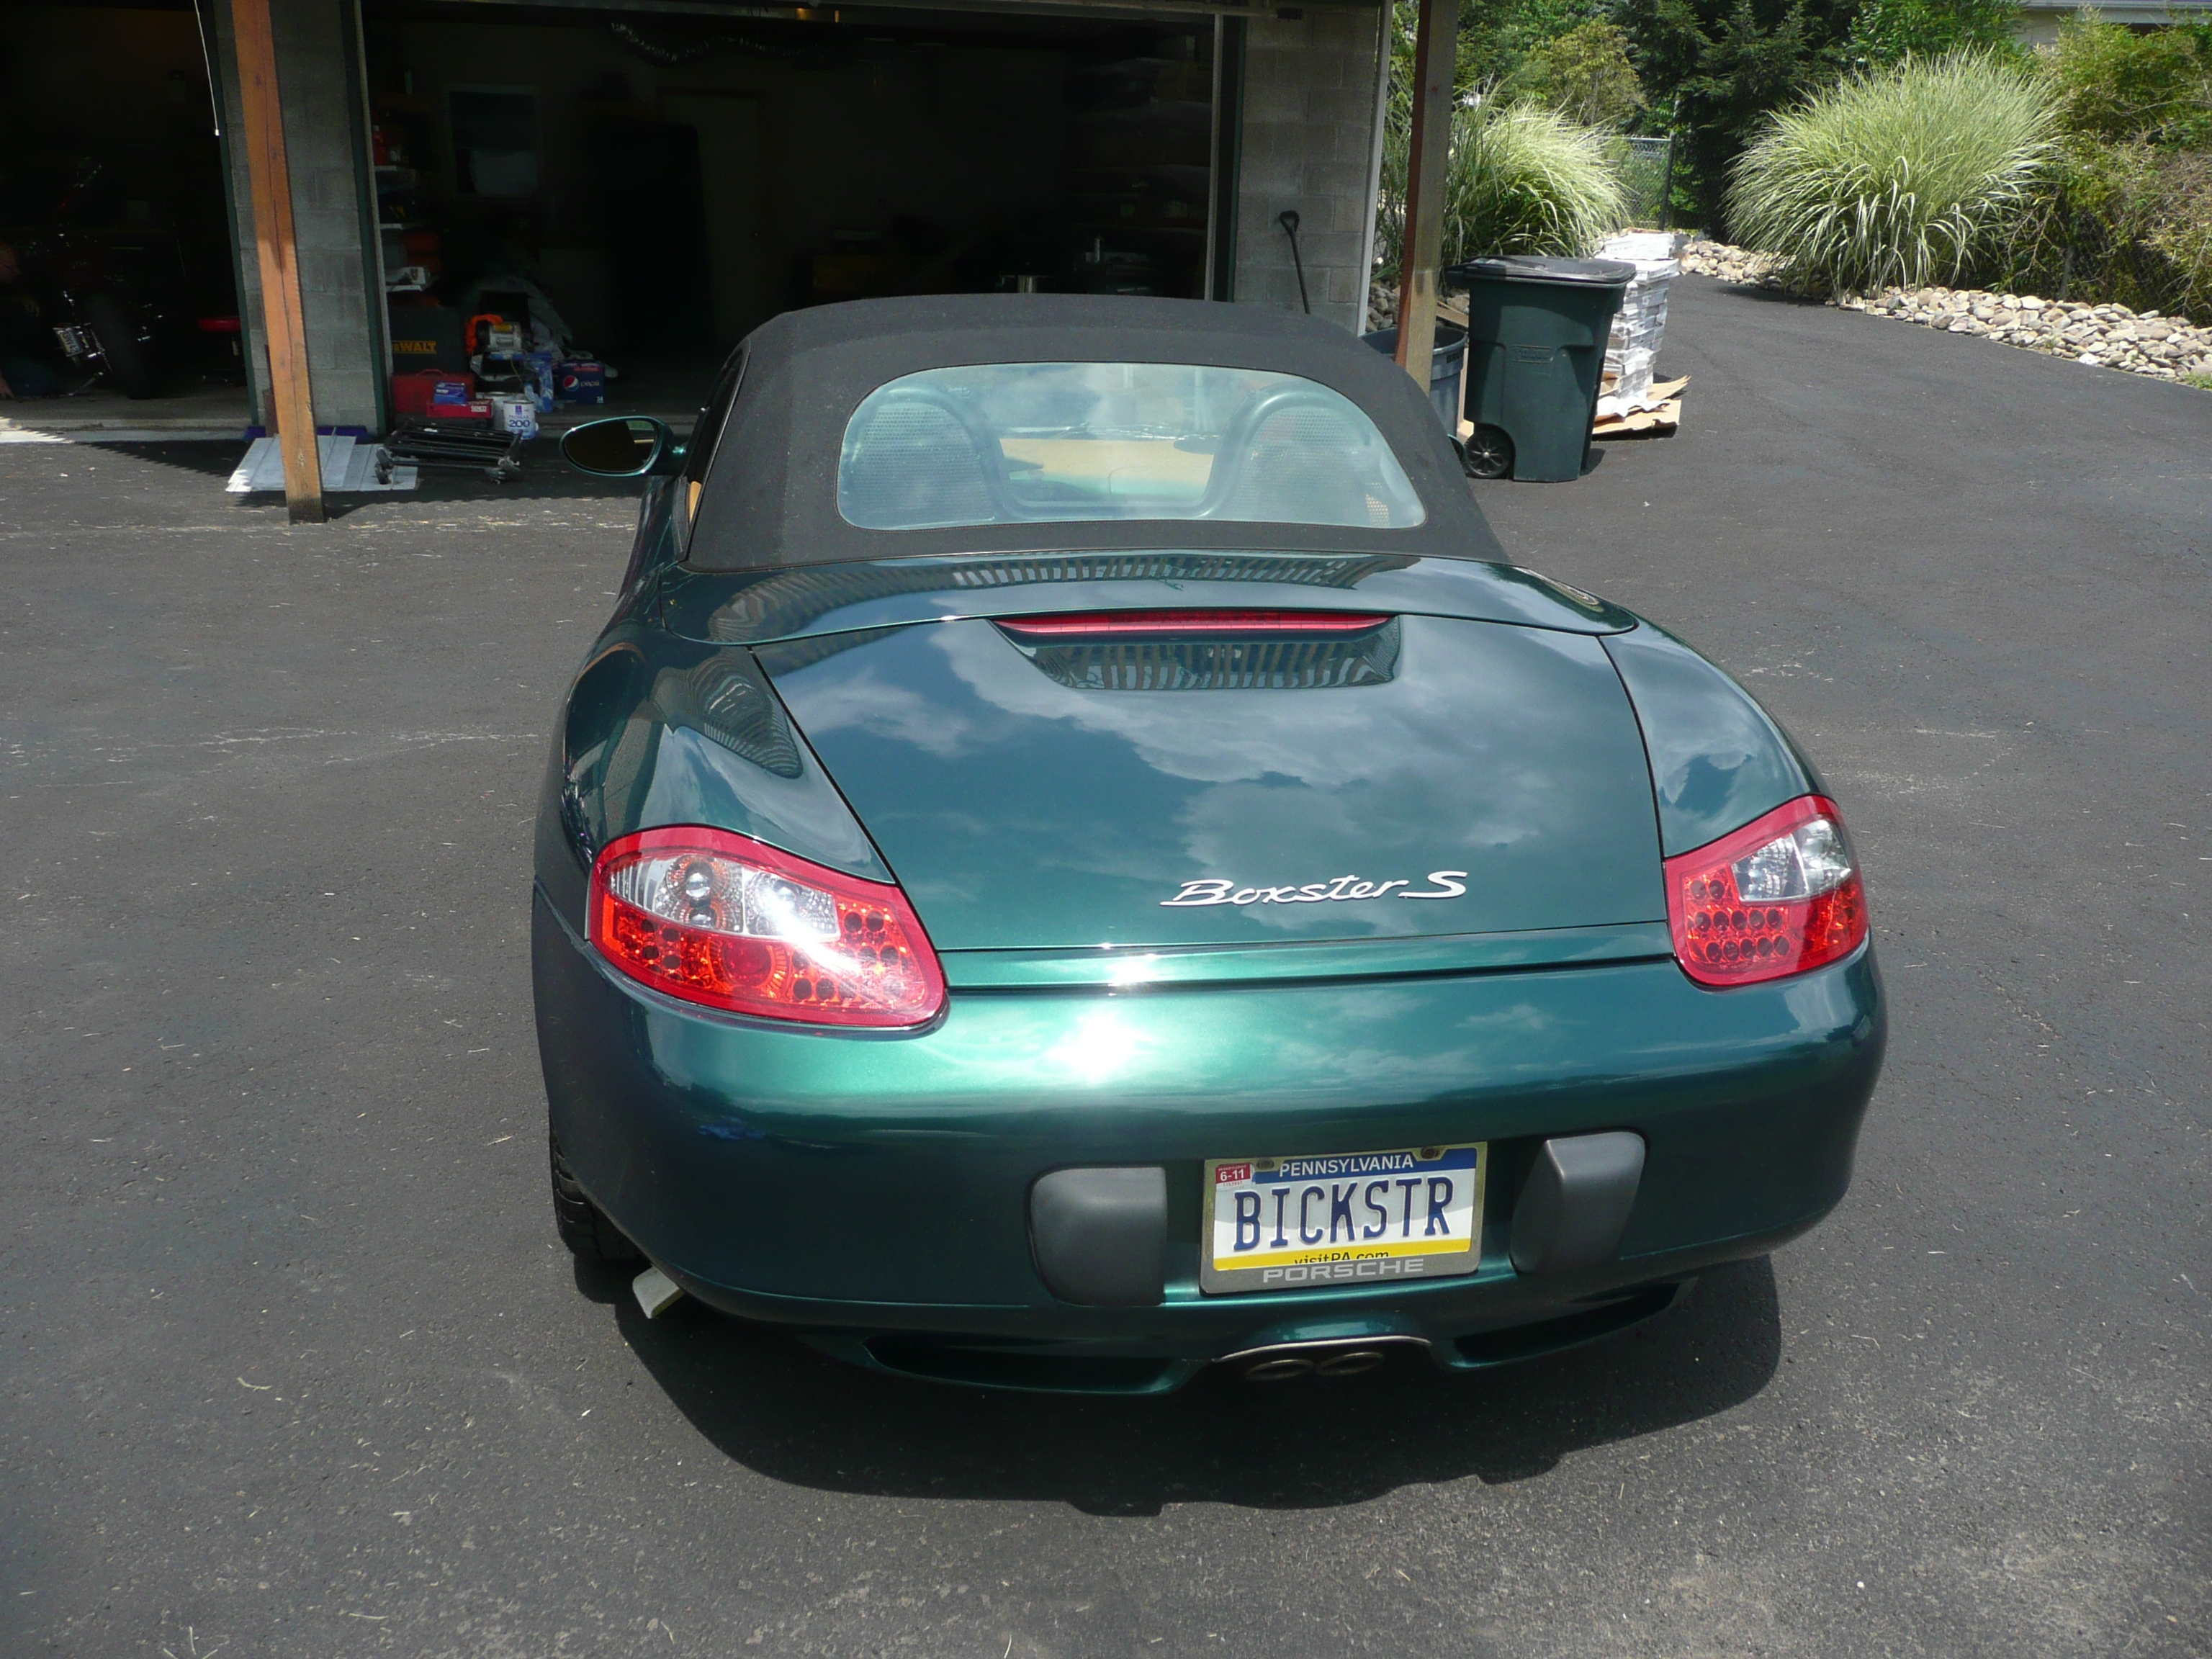 nolimit35 39 s 2001 porsche boxster s cabriolet 2d in hopewell twp pa. Black Bedroom Furniture Sets. Home Design Ideas